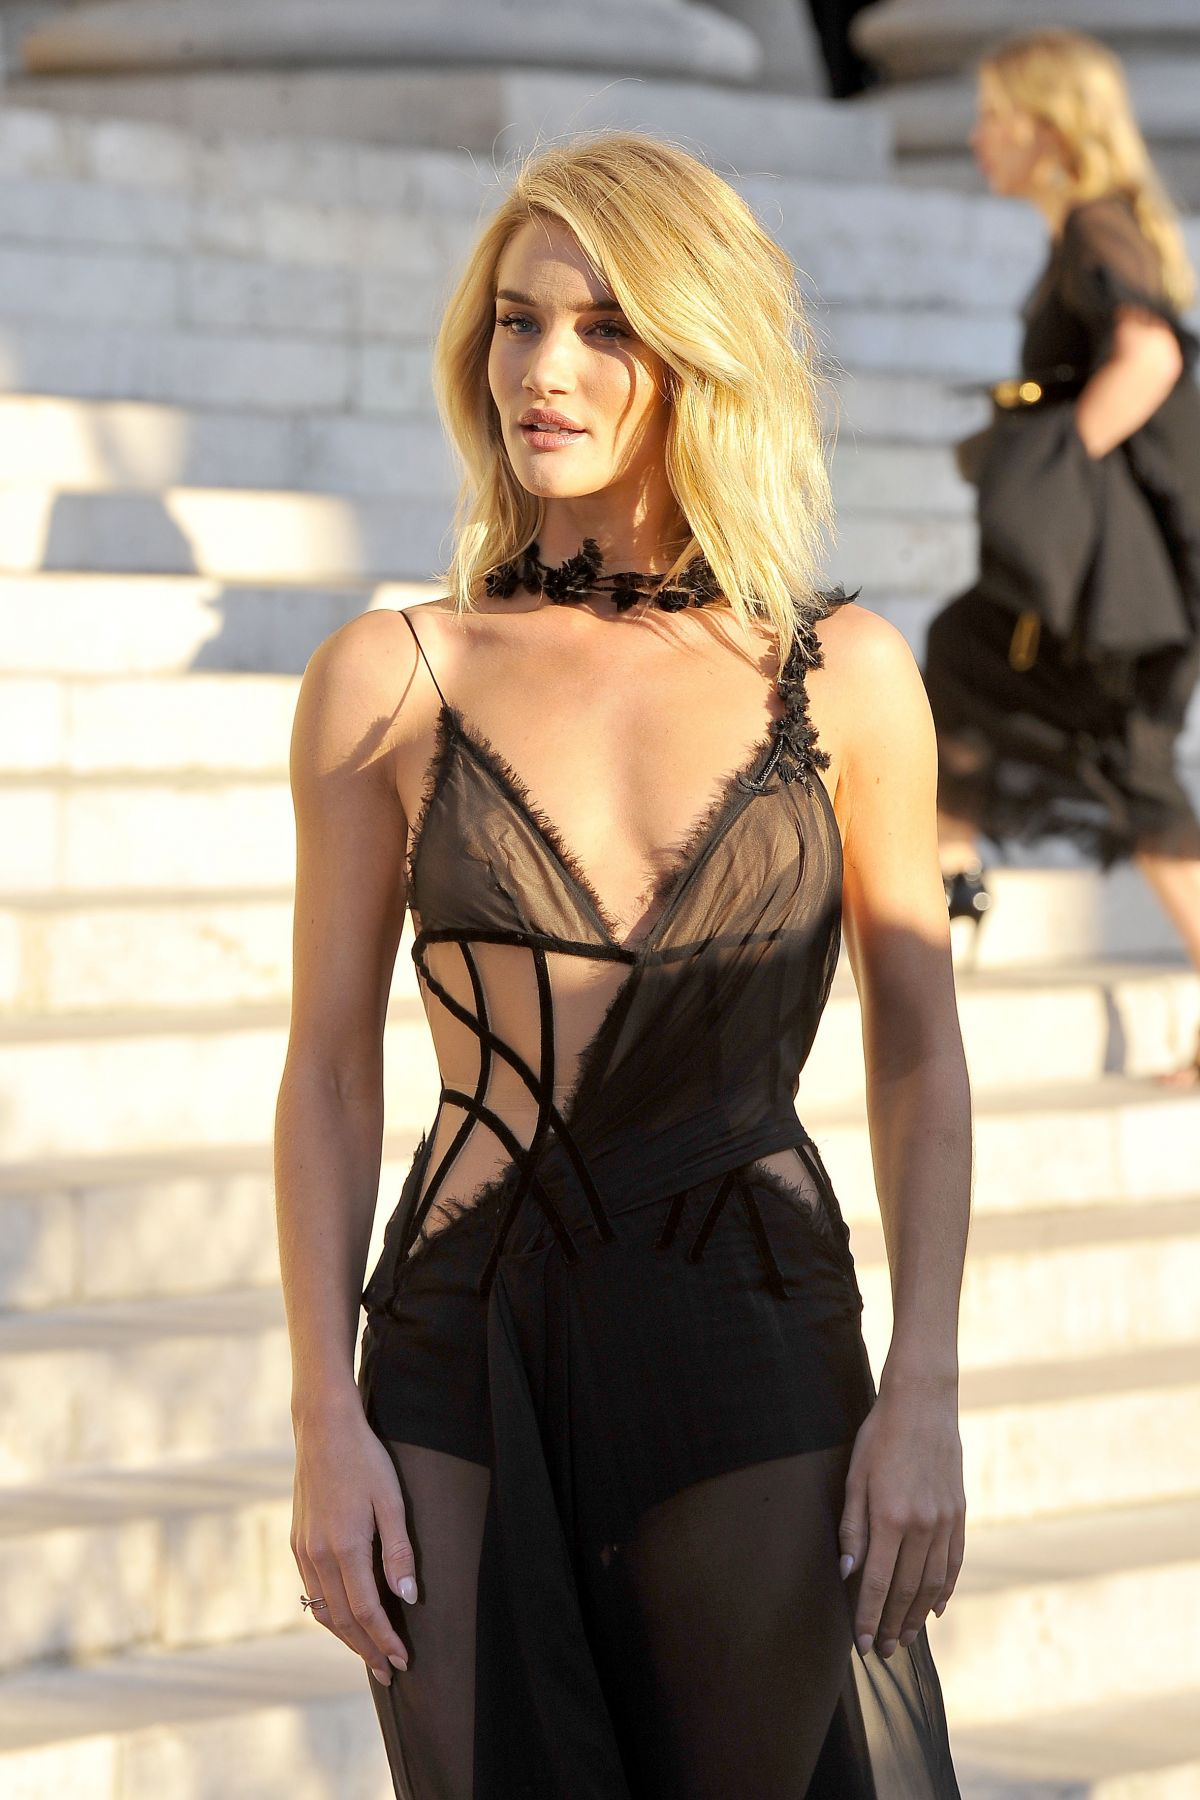 Rosie Huntington-Whiteley At Atelier Versace Show - Celebzz - Celebzz Rosie Huntington Whiteley